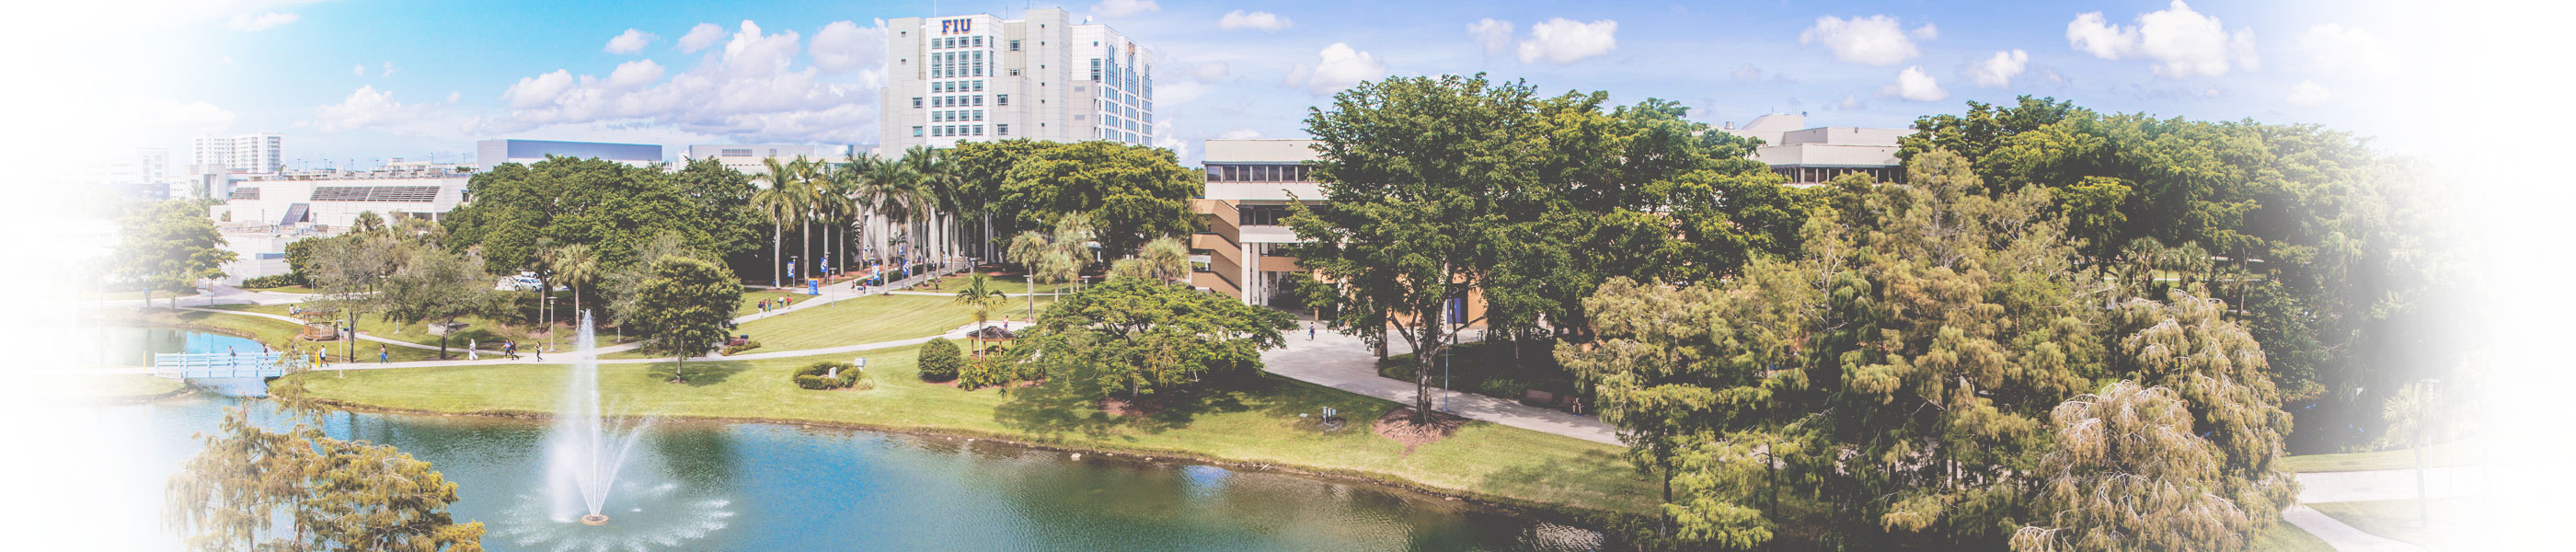 FIU Modesto Maidique Campus